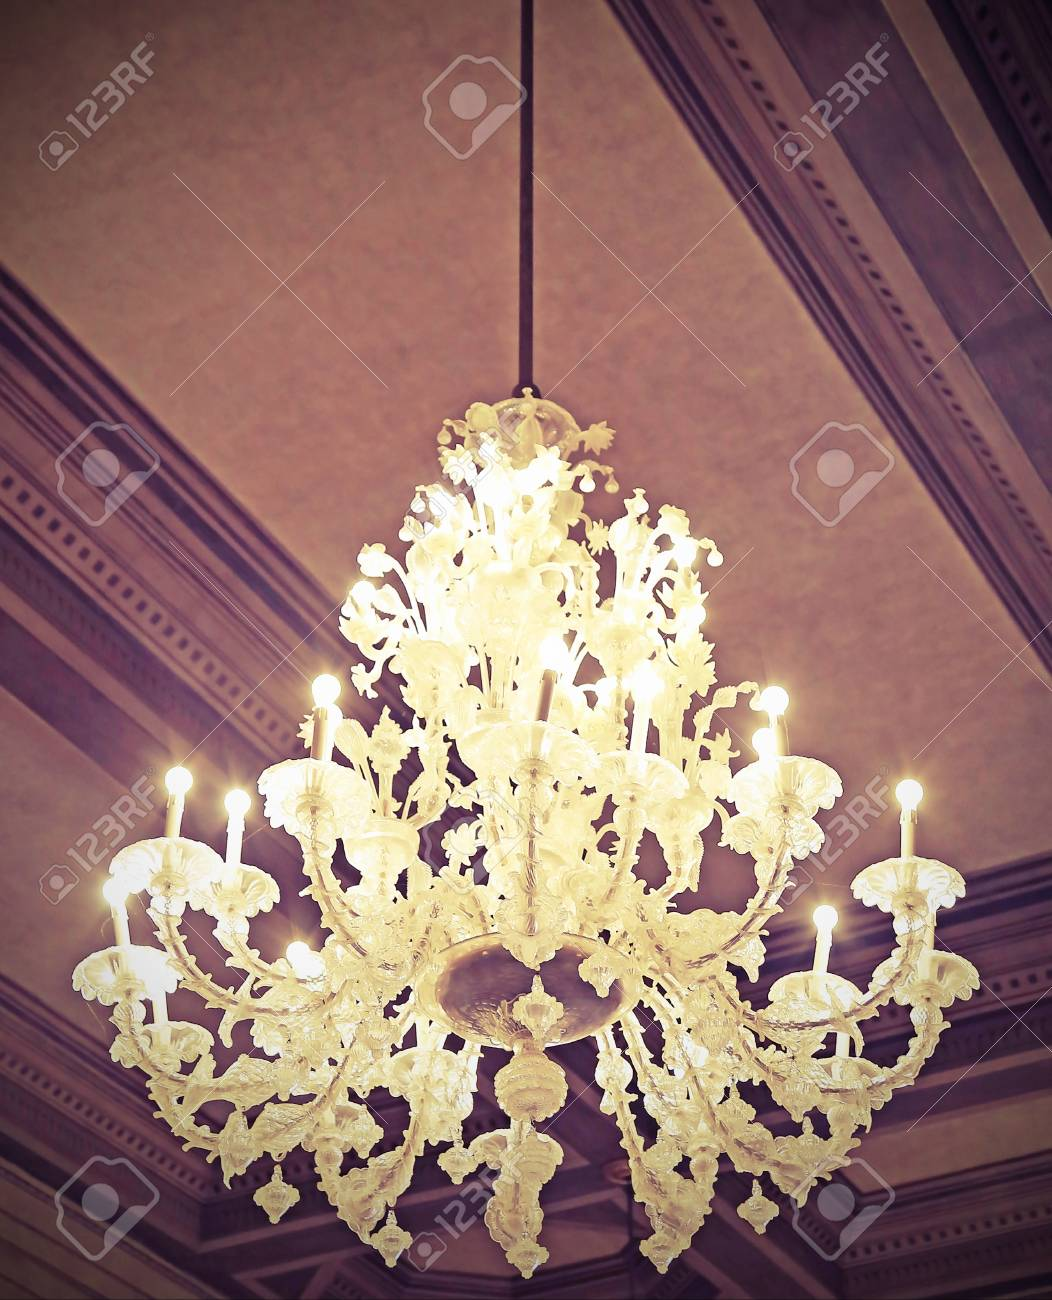 Big chandelier in glass in murano style in the ancient palace big chandelier in glass in murano style in the ancient palace in italy with vintage effect aloadofball Choice Image